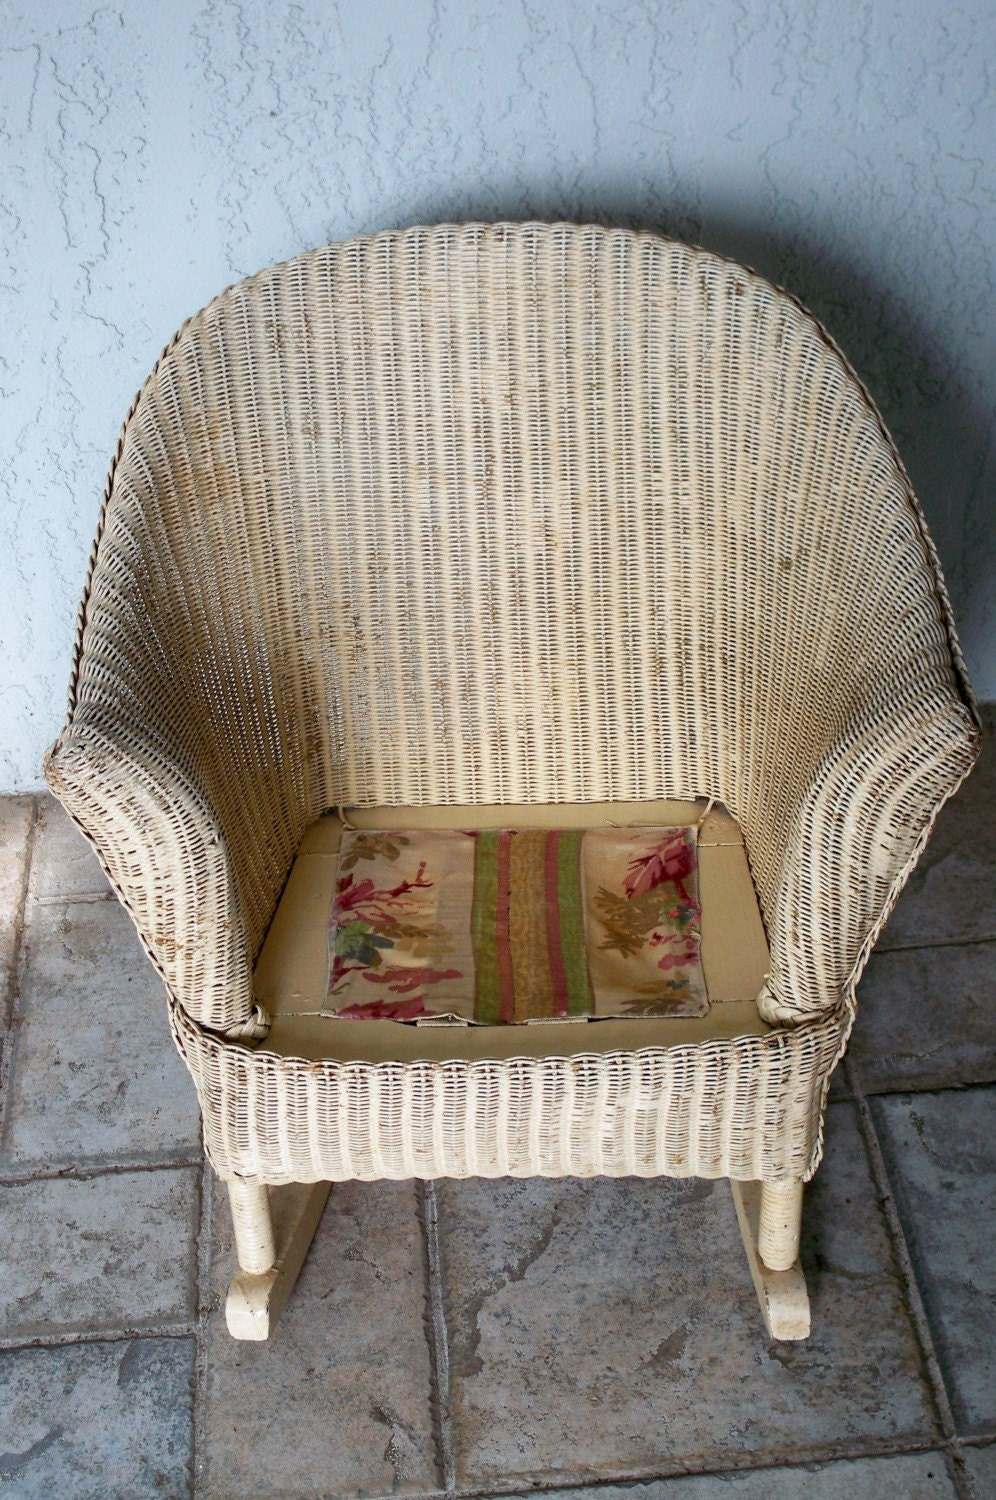 Antique Wicker Childs Rocking Chair By Onlinechic On Etsy